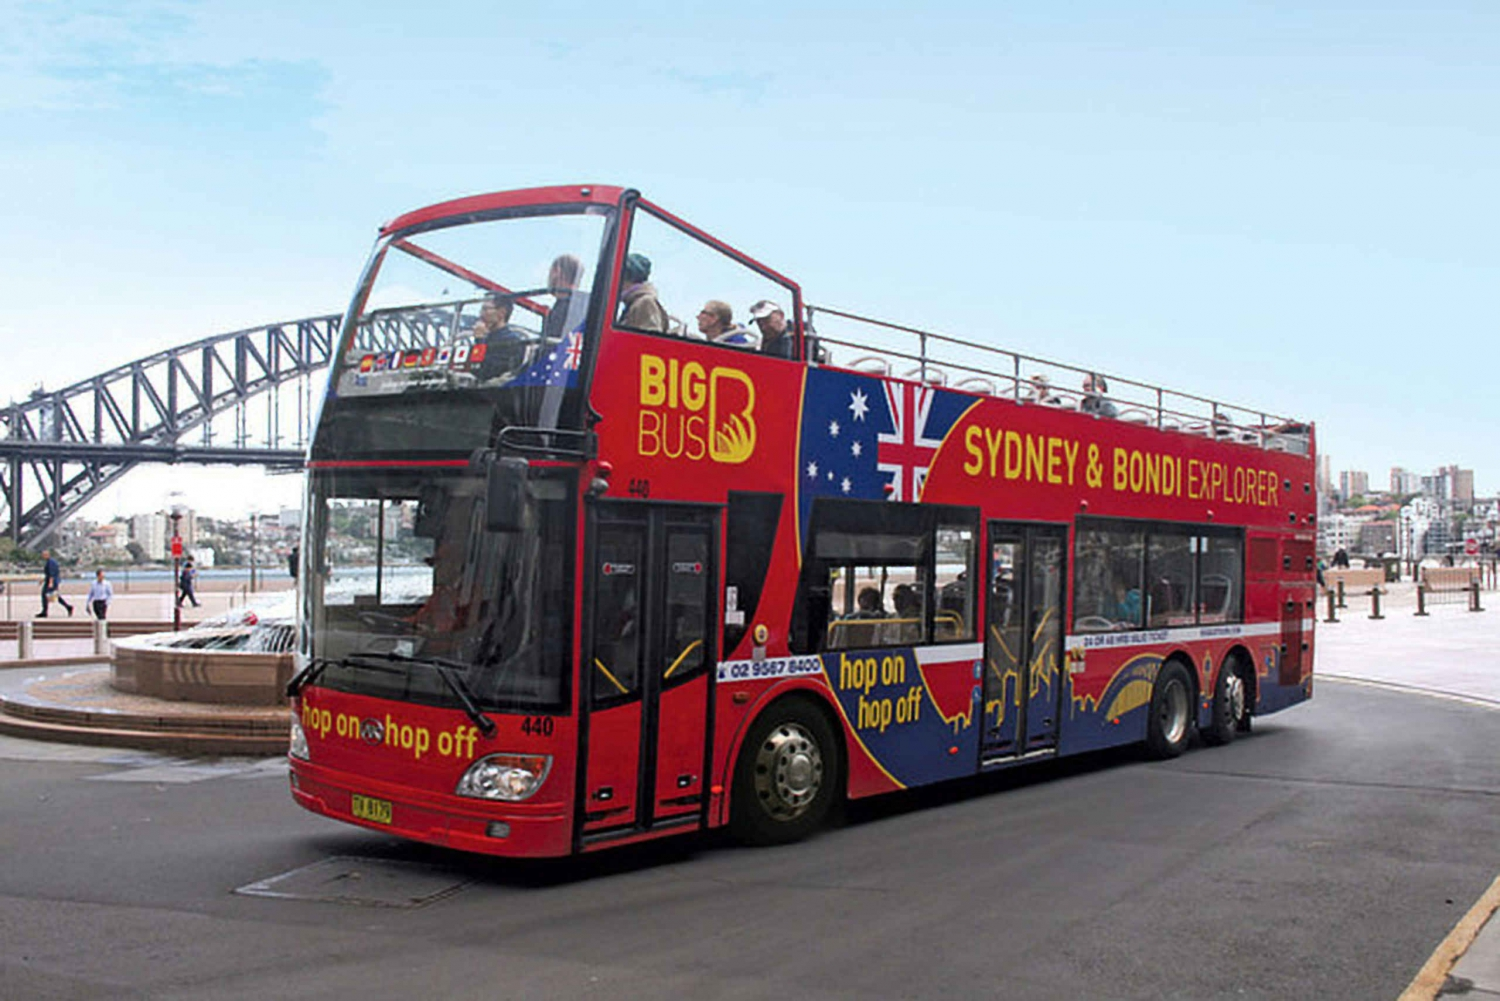 Sydney Harbour: 45-Minute Jet Boat Ride + City Sightseeing